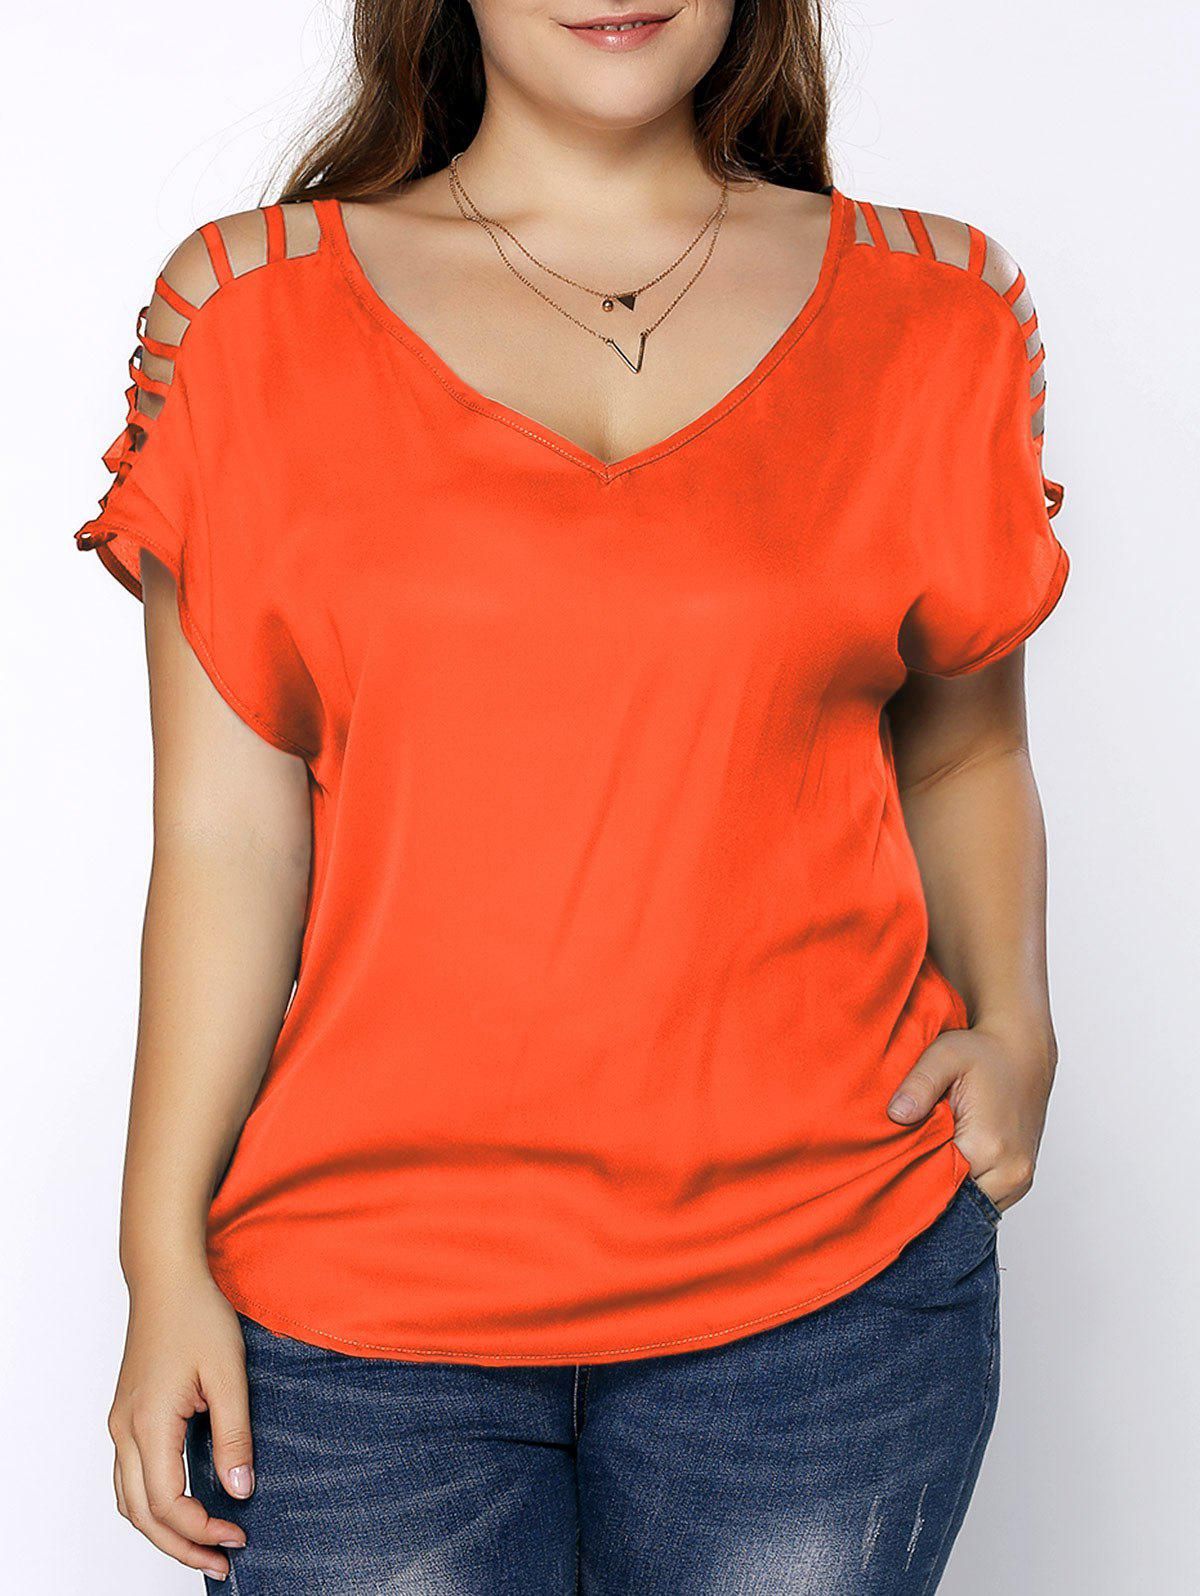 4d971687f90 59% OFF   2019 Plus Size V Neck Ripped Sleeve Tee